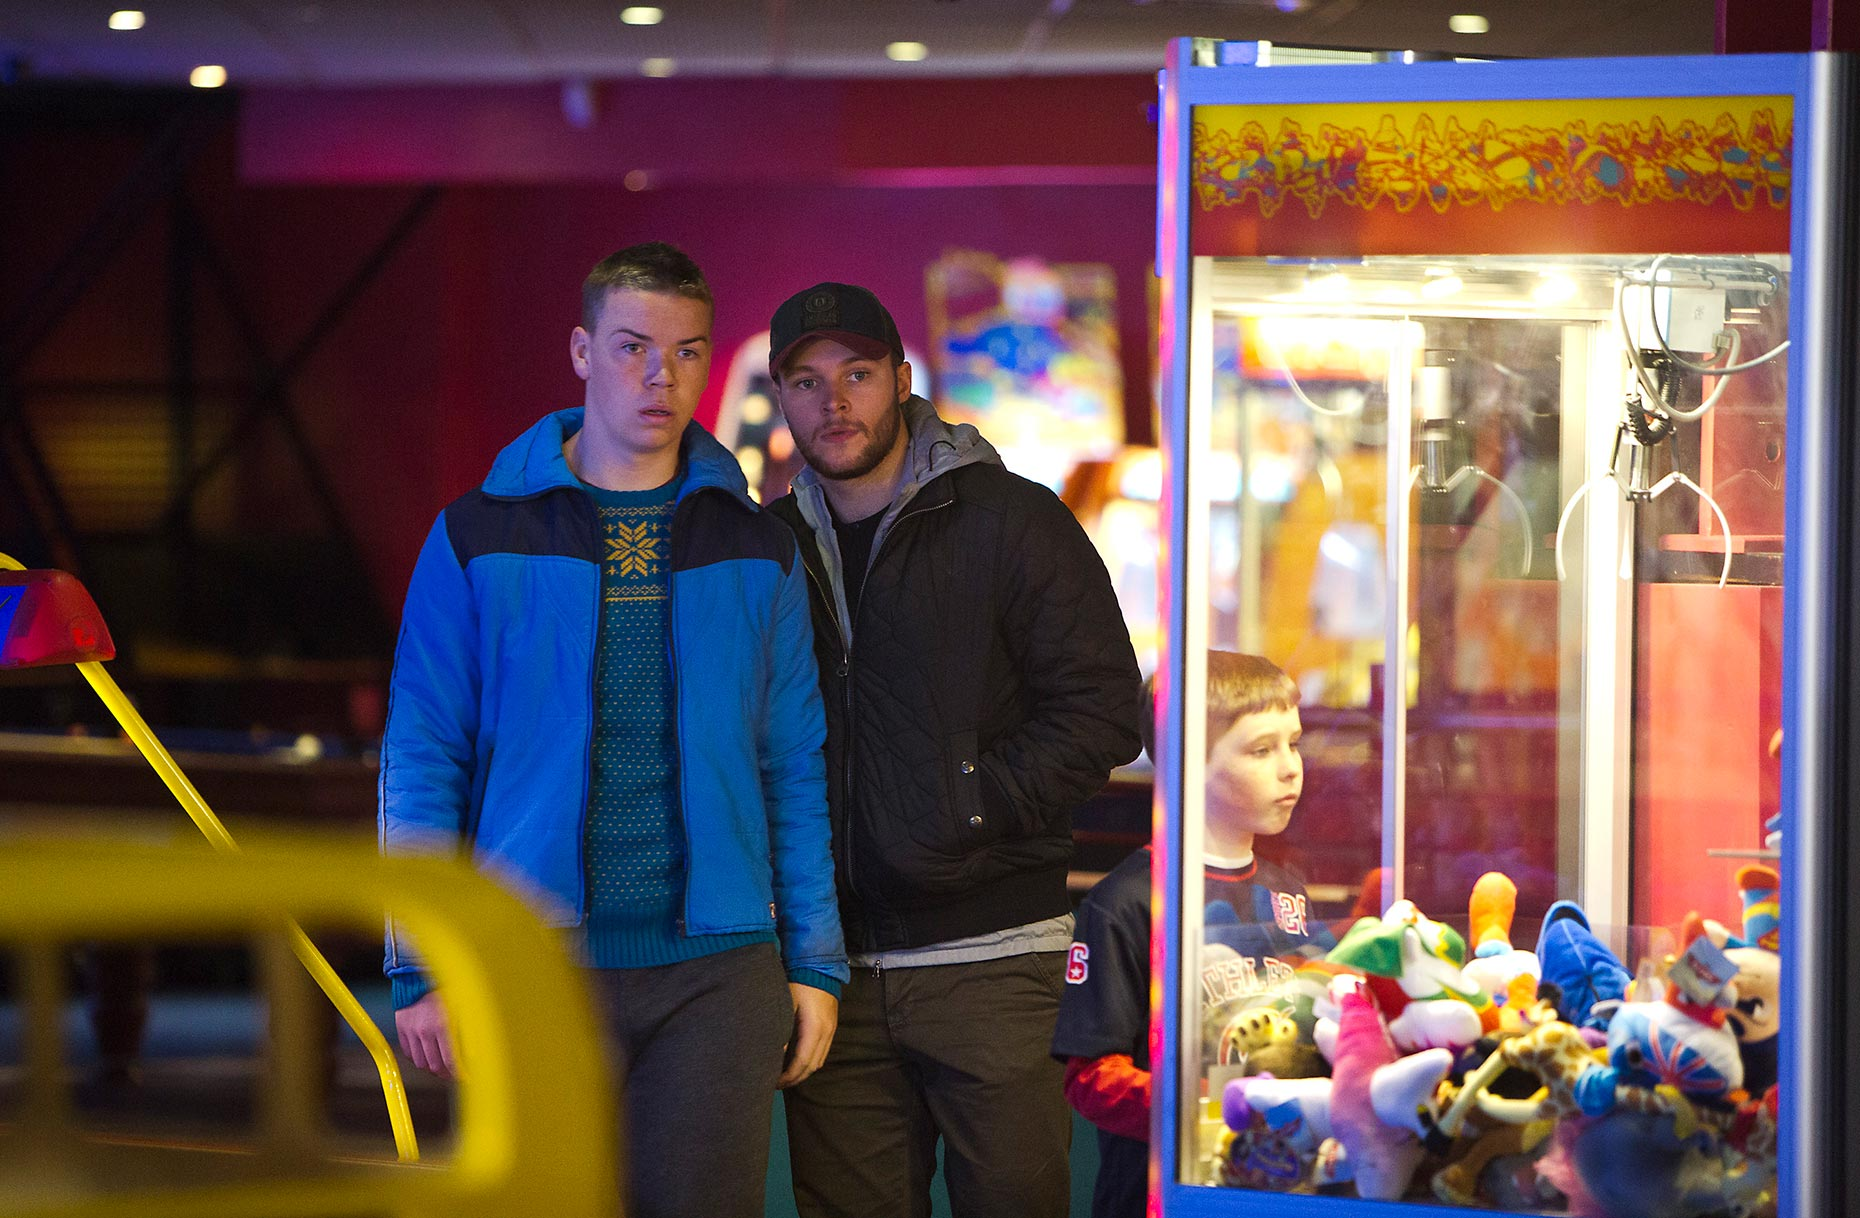 GLASSLAND Will Poulton and Jack Reynor